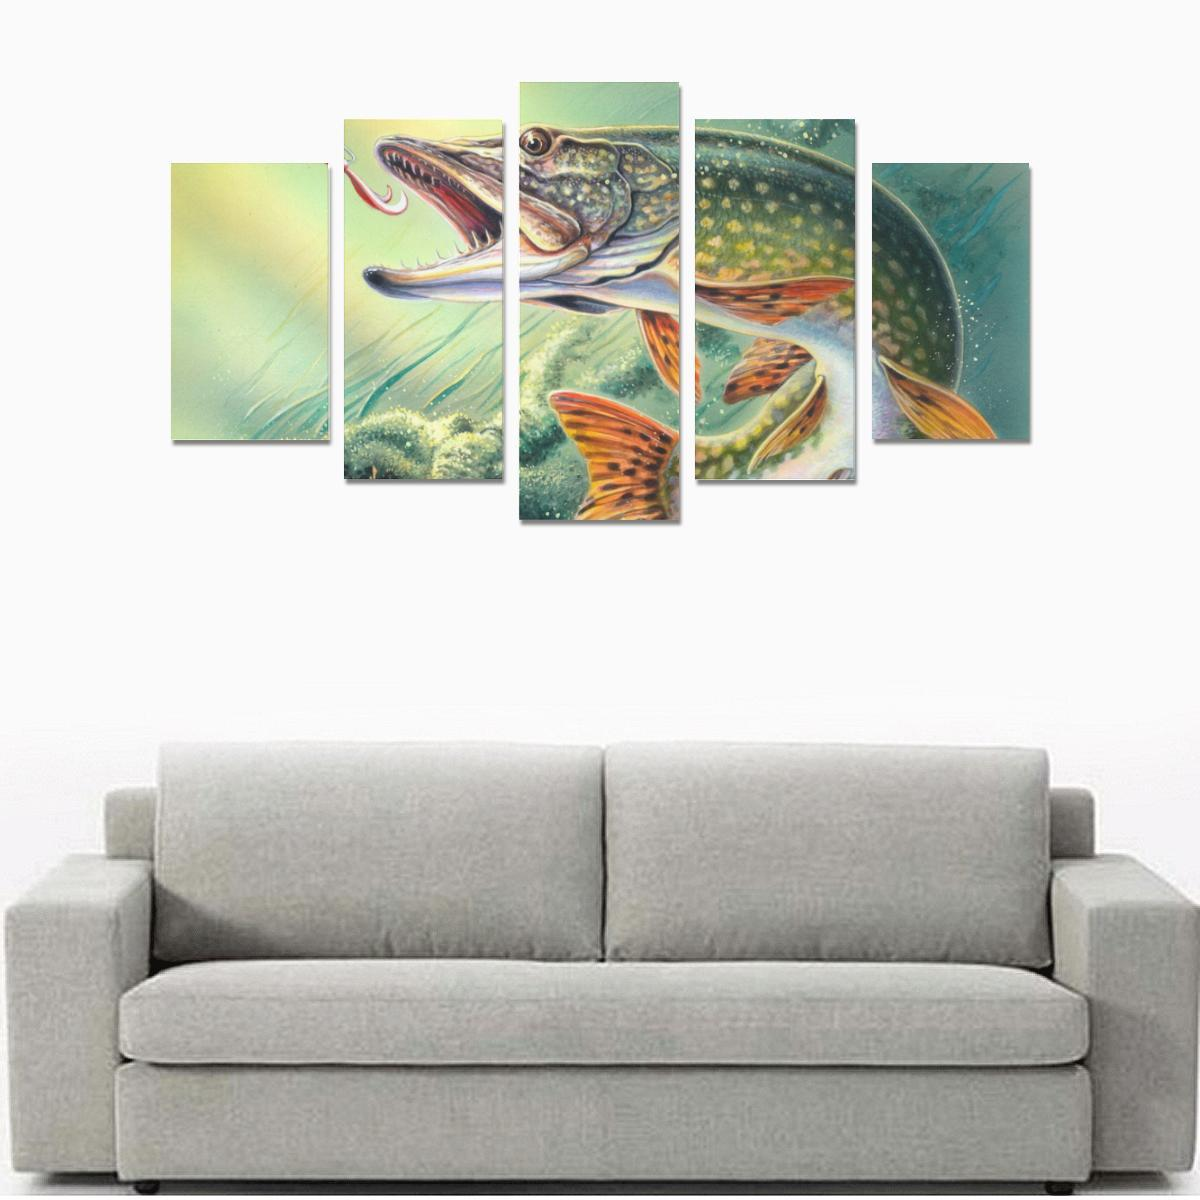 Buy Wall art for fishing lovers - Familyloves hoodies t-shirt jacket mug cheapest free shipping 50% off